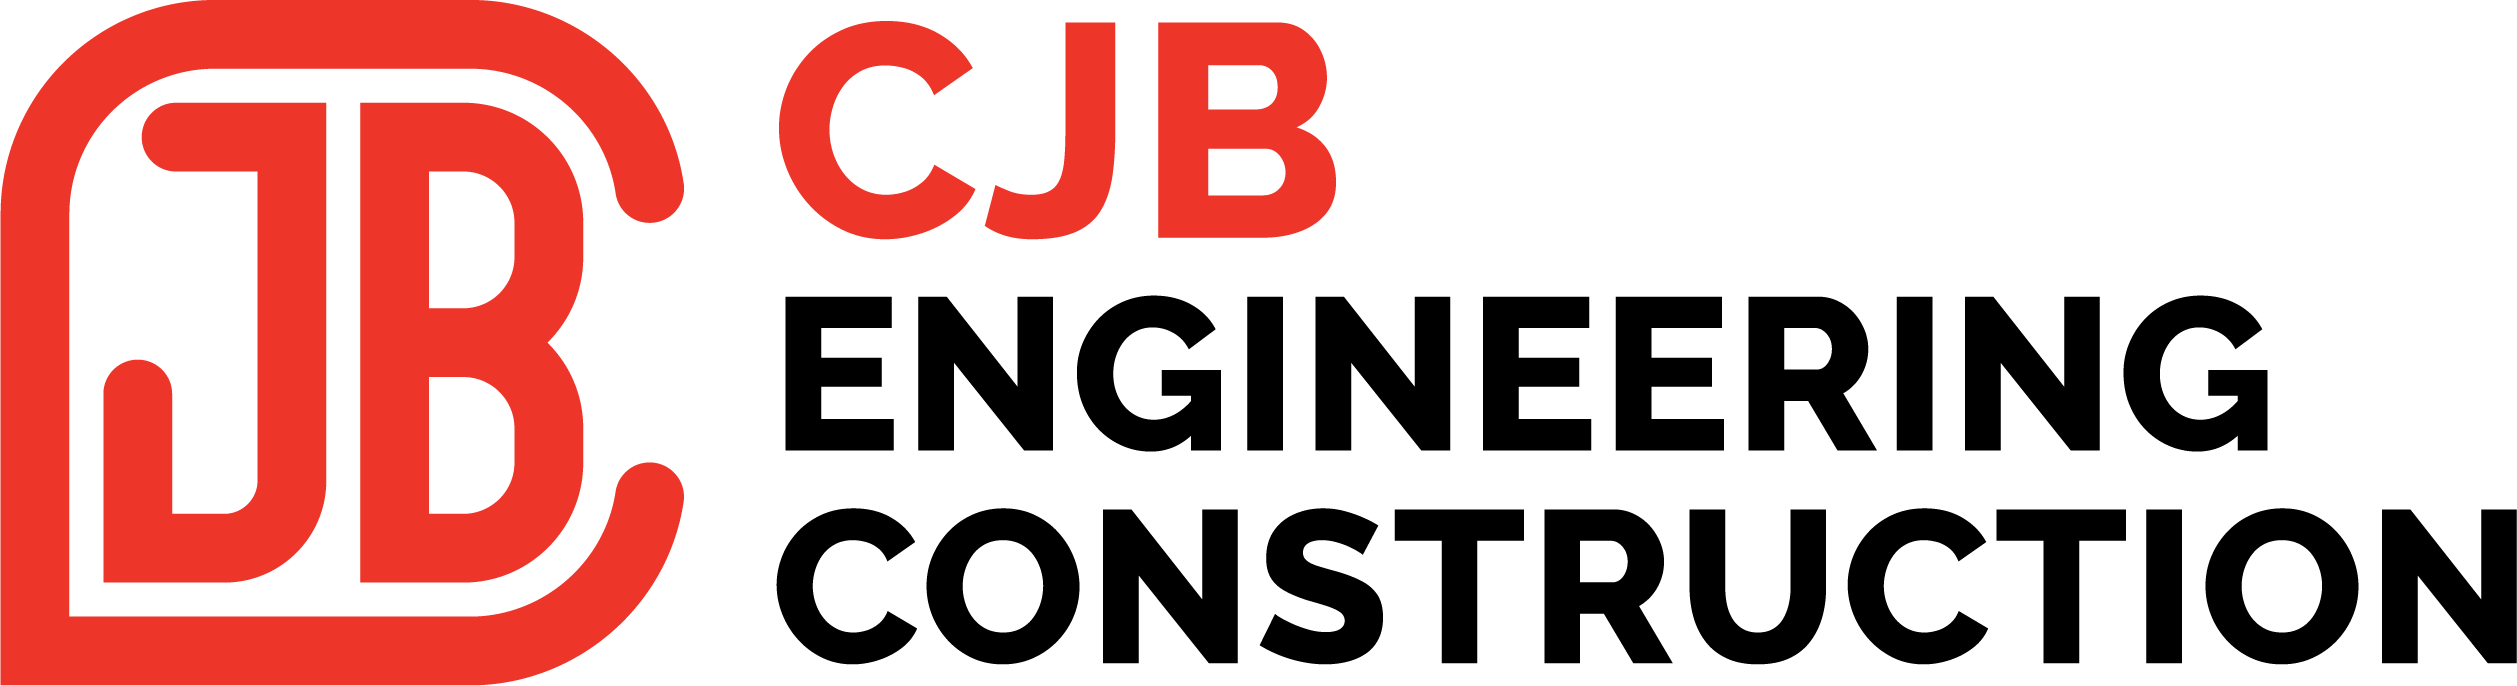 Engineering and Construction Services in Western Australia | CJB Engineering Construction